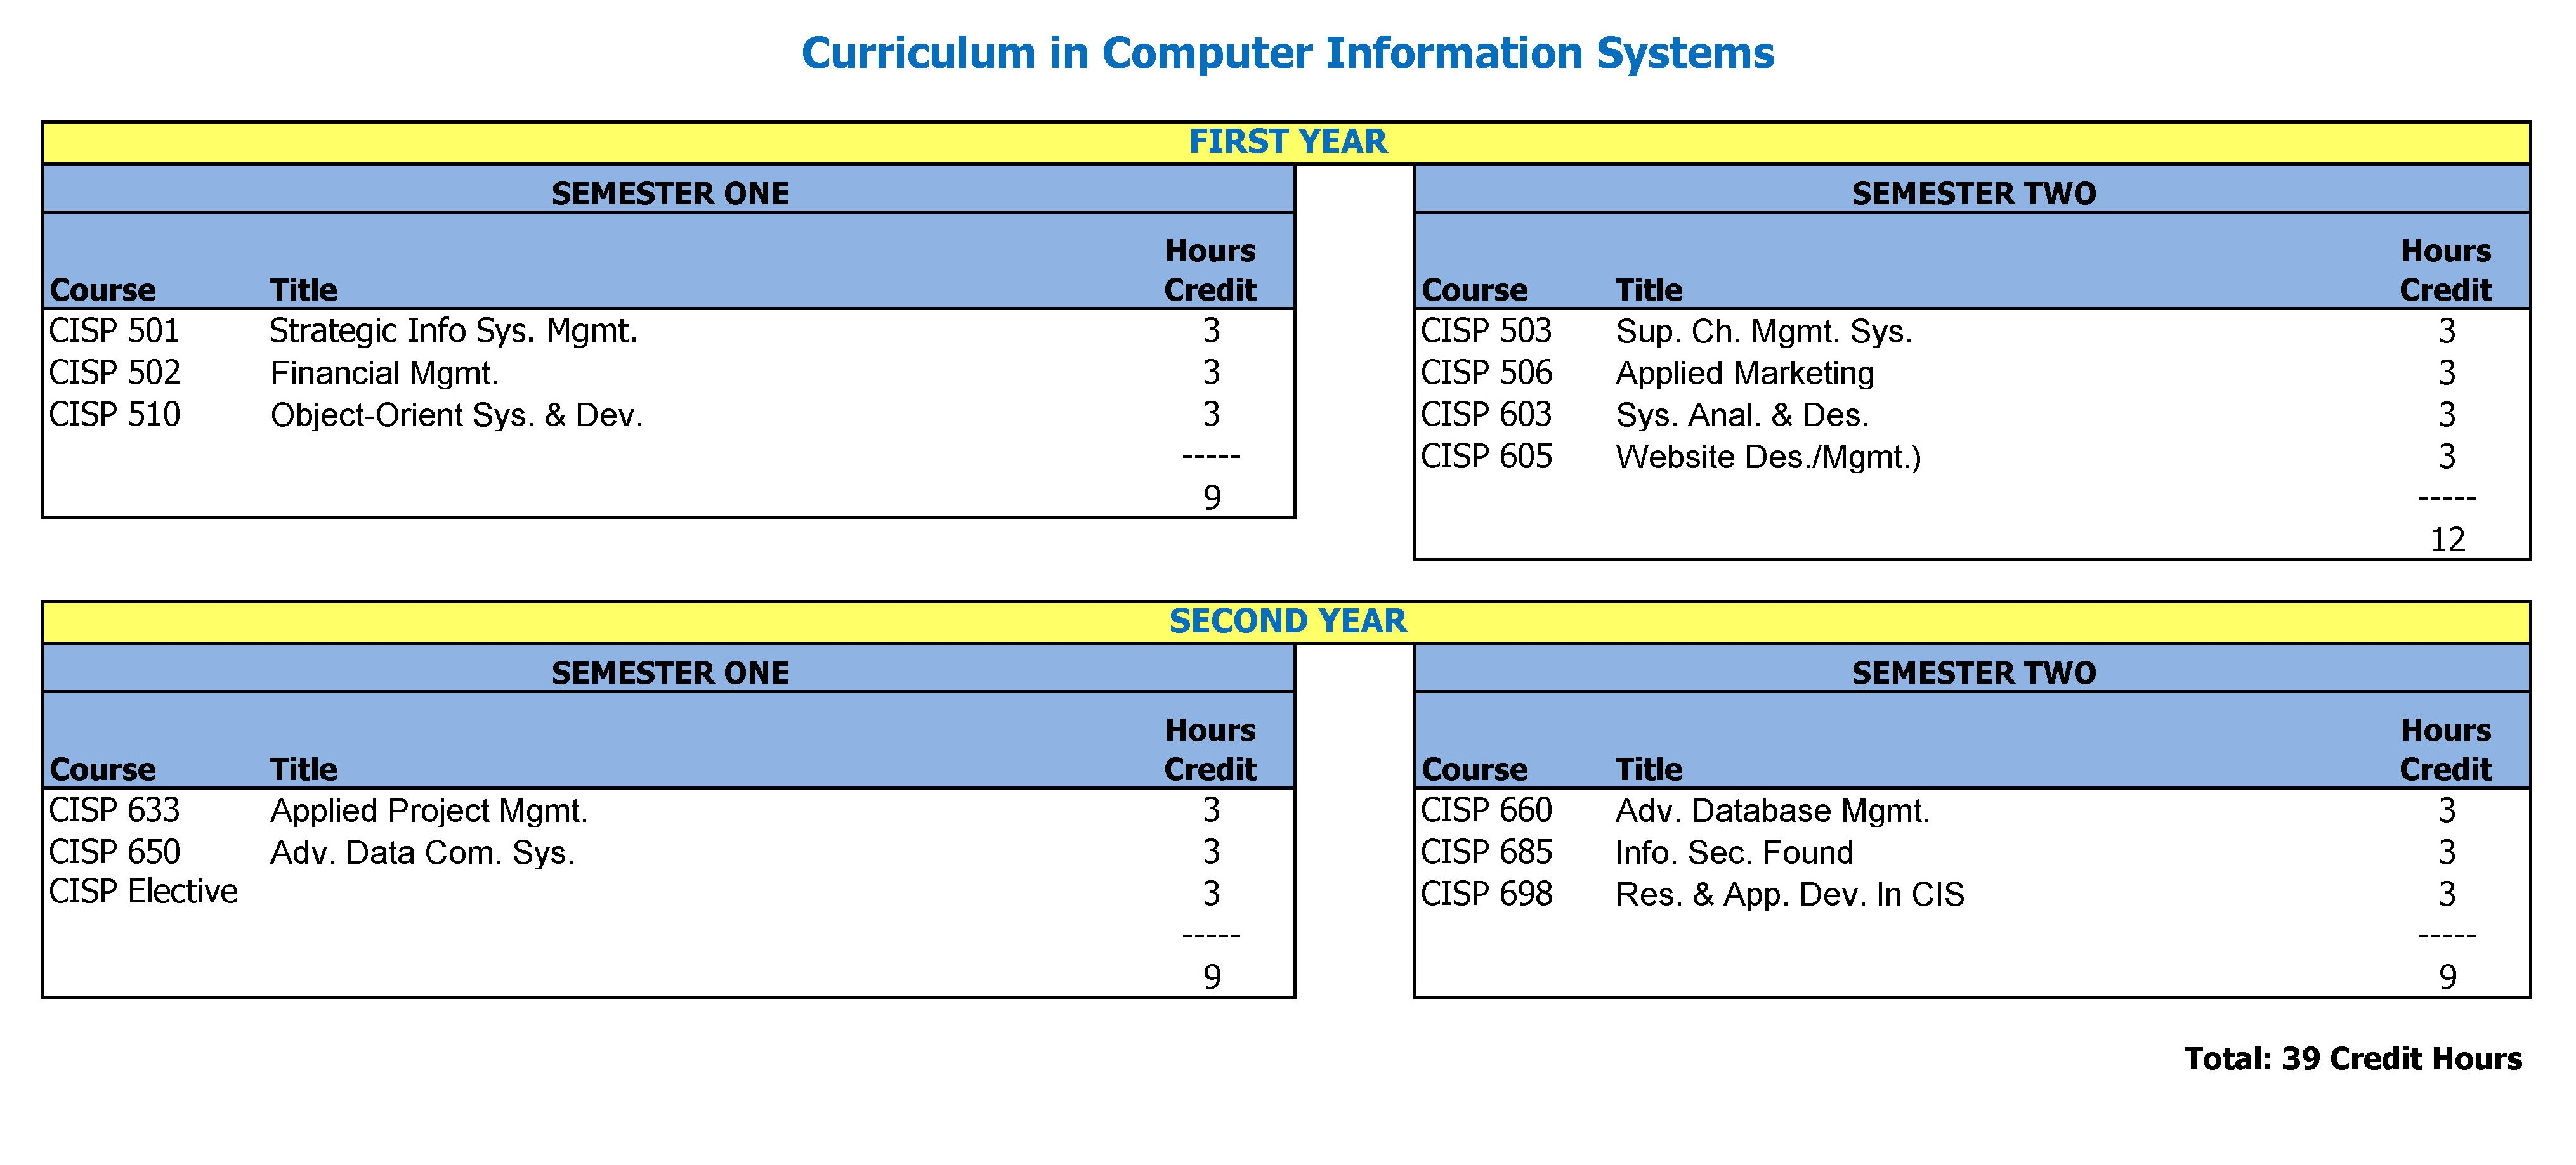 Curriculum in CIS Graduate